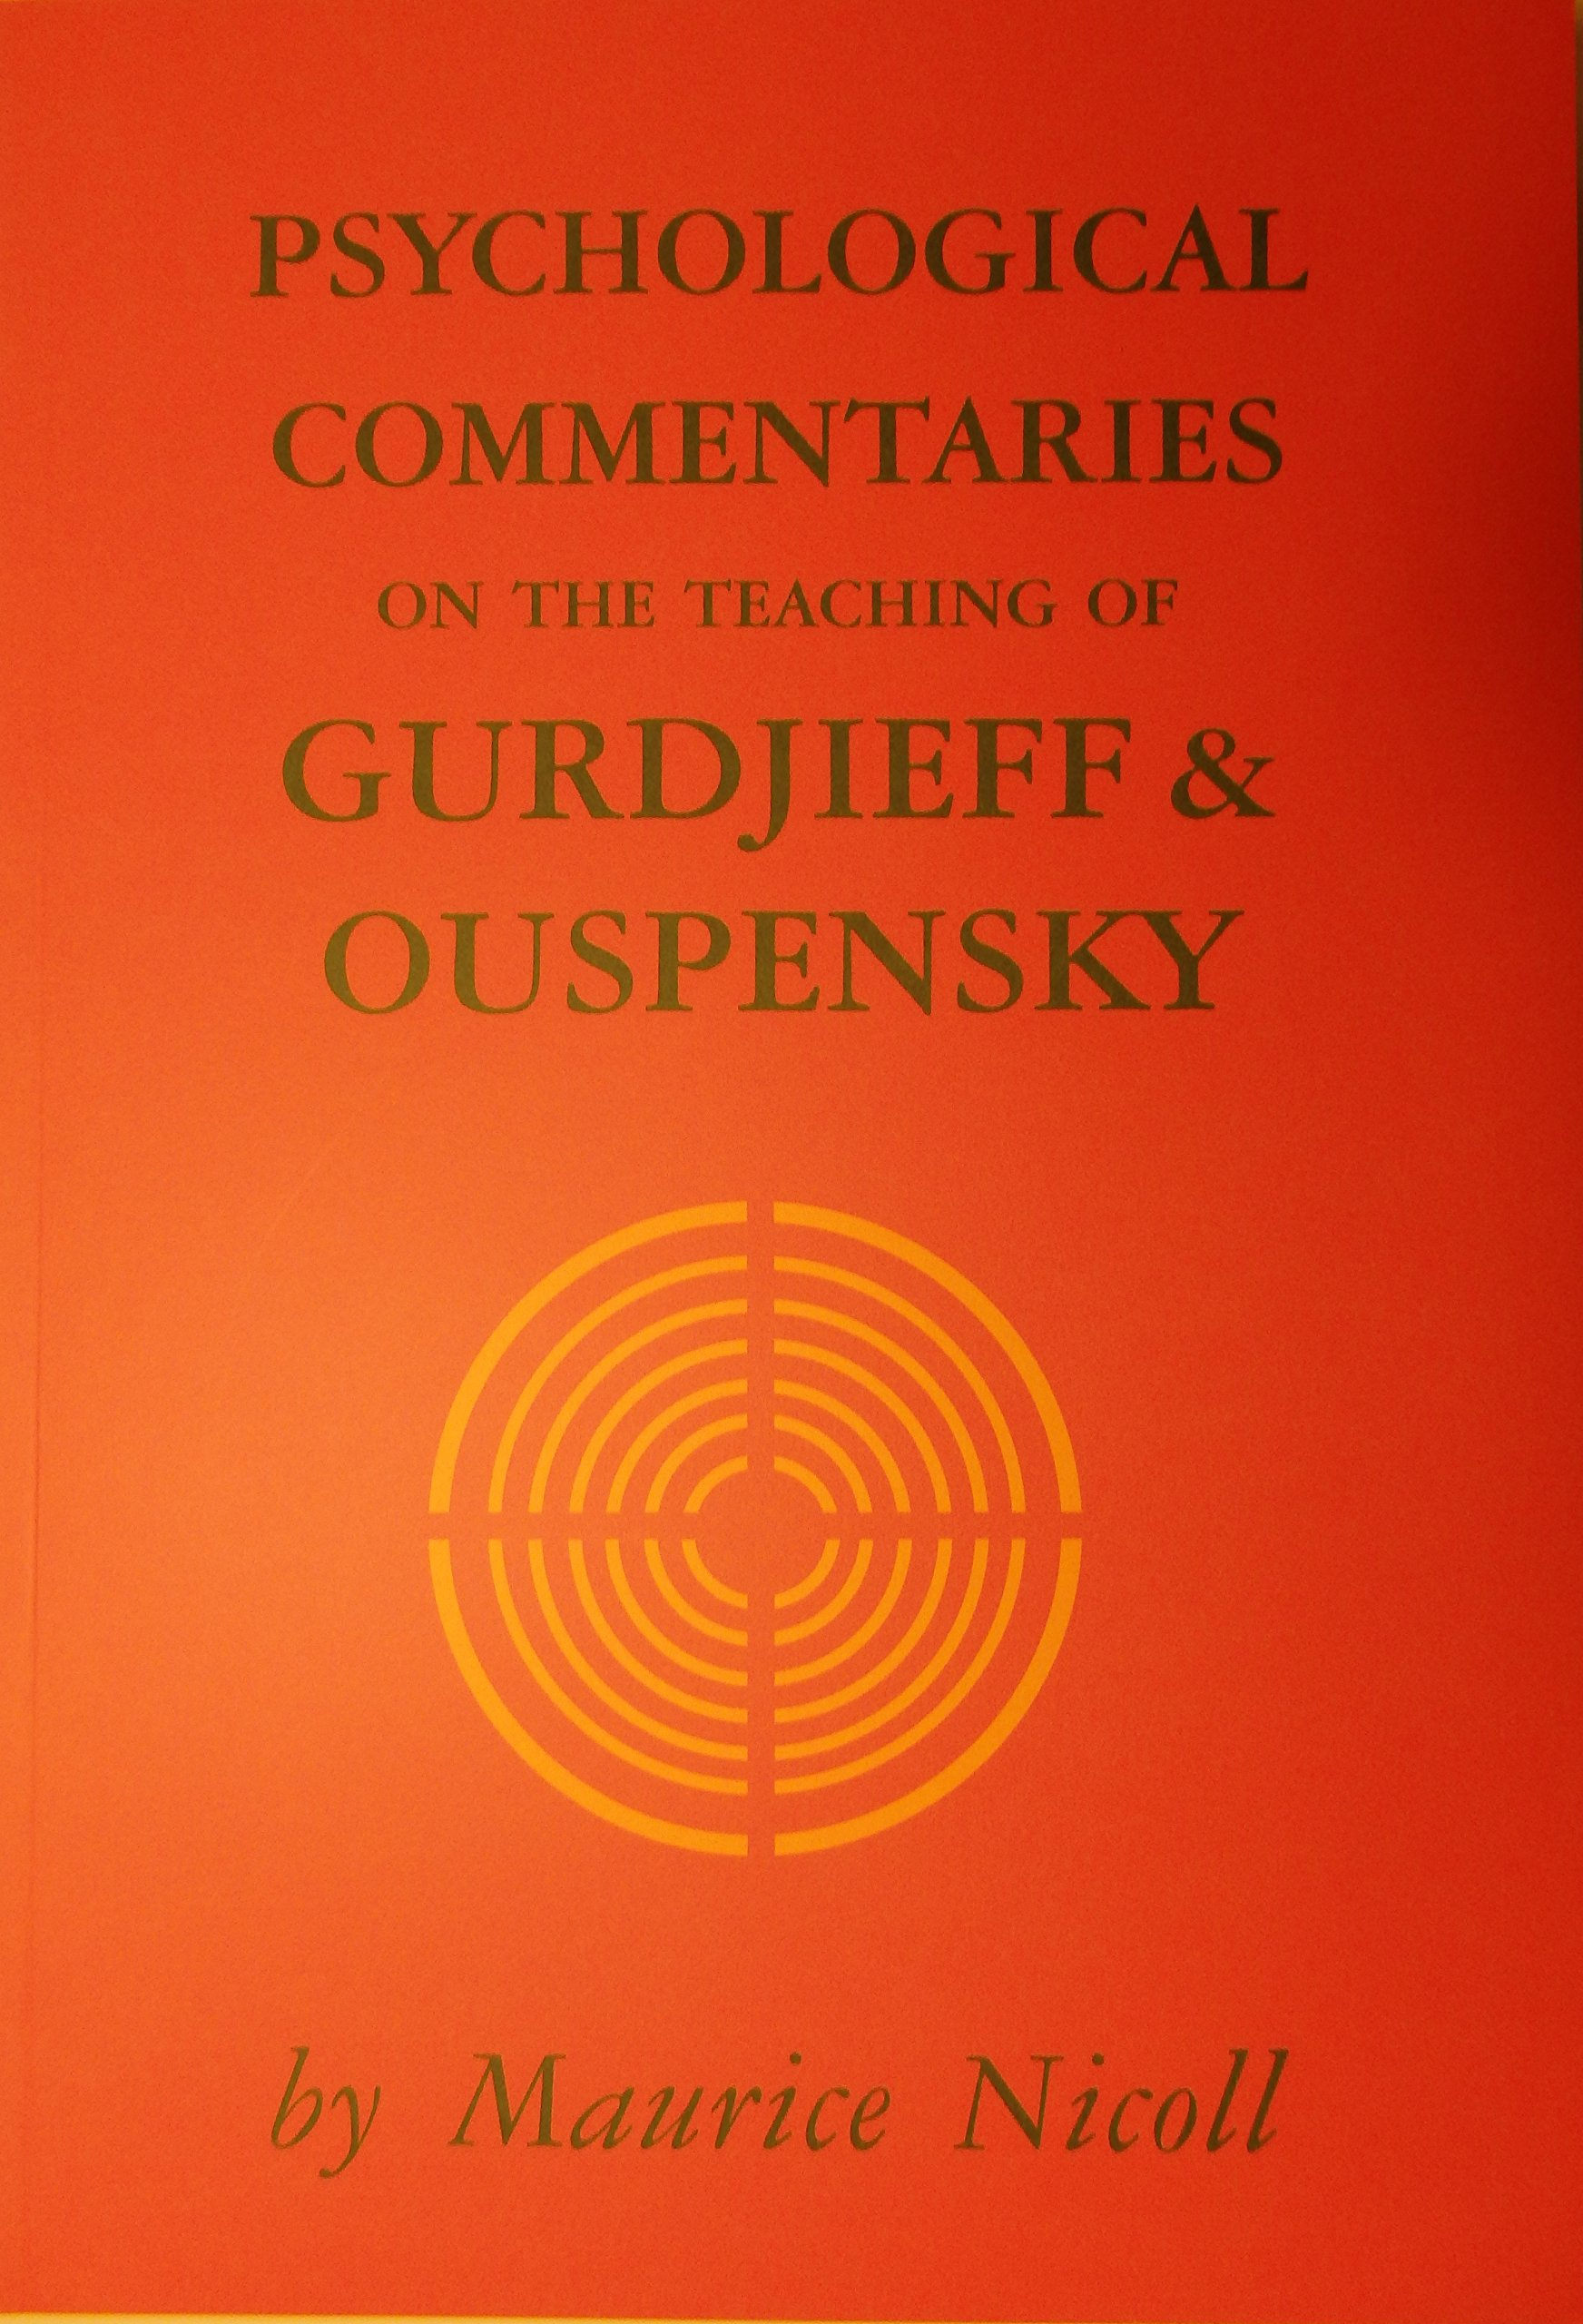 Read Online PSYCHOLOGICAL COMMENTARIES ON THE TEACHING OF GURDJIEFF AND OUSPENSKY 6 VOL SET by MAURICE NICOLL (2015-05-04) ebook